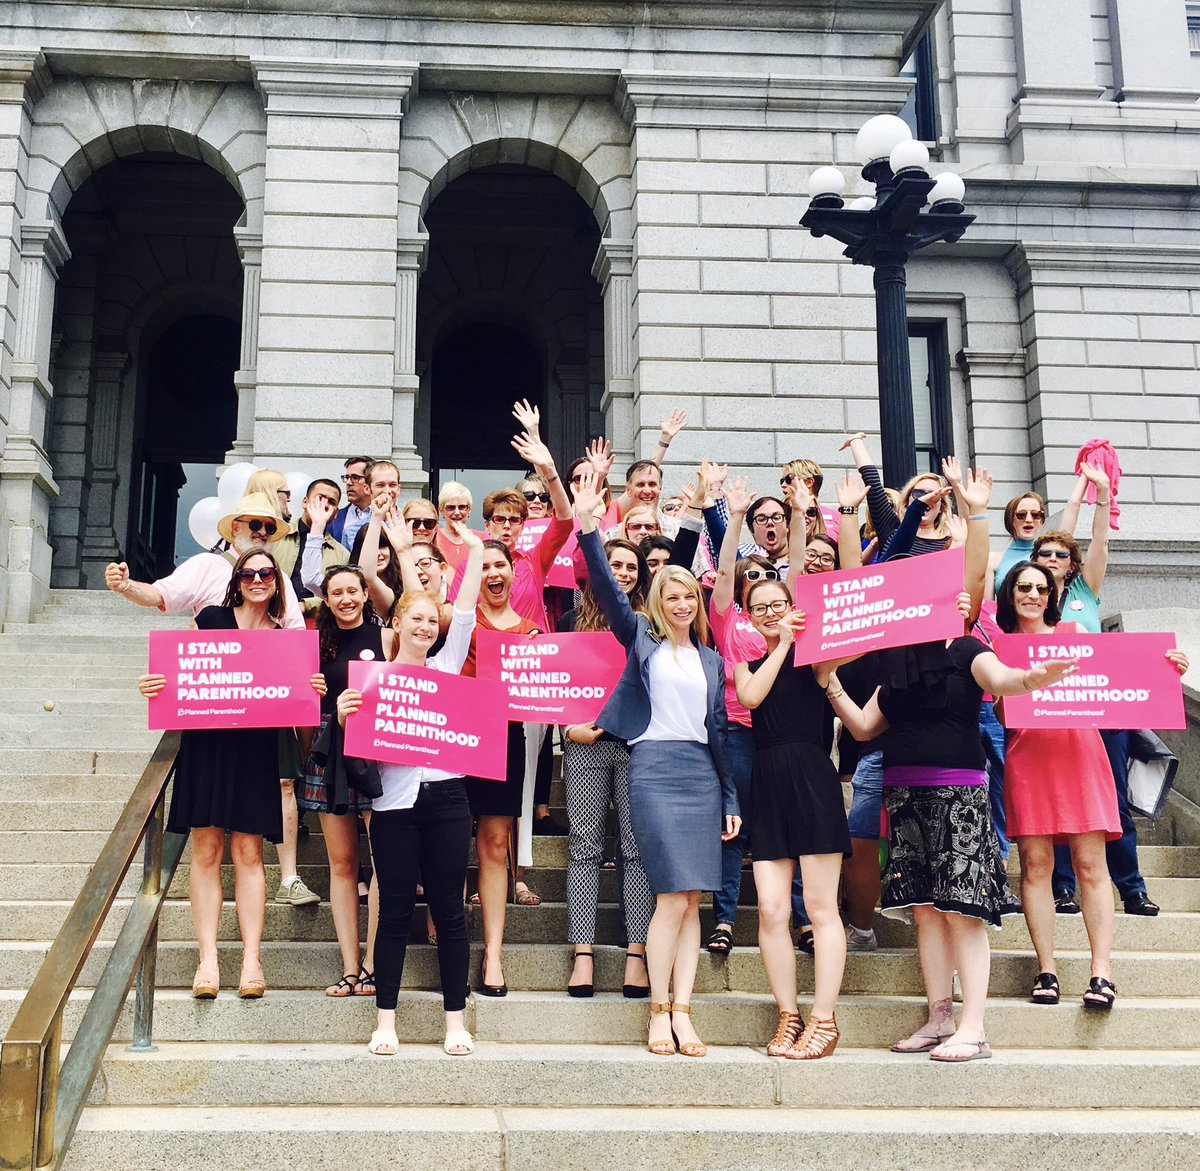 Co color by number girls - Color Naral Colorado Brittany Pettersen And 5 Others